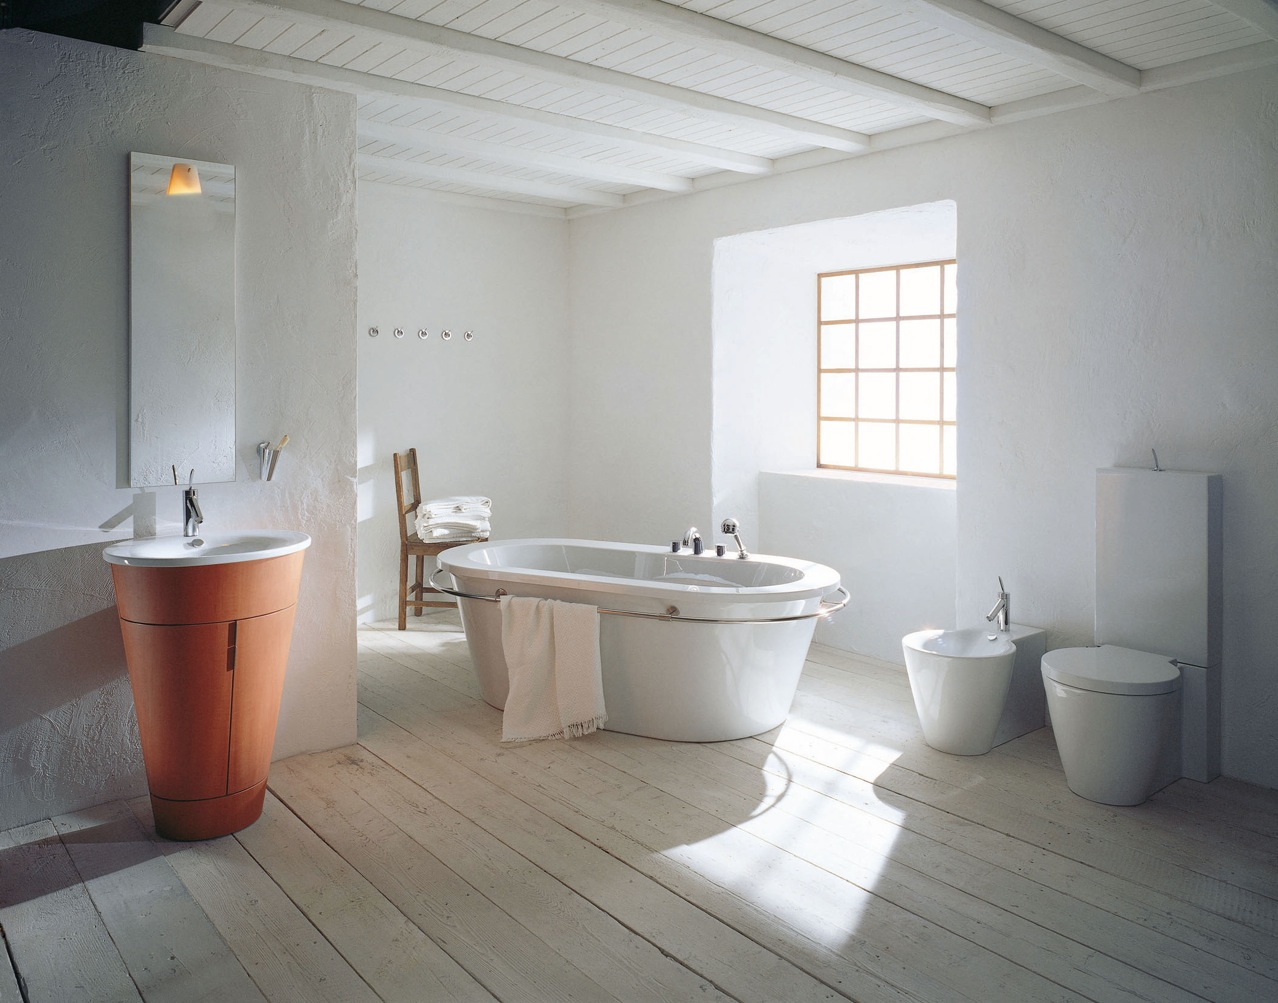 Philipe starck rustic modern bathroom decor - Images of bathroom decoration ...